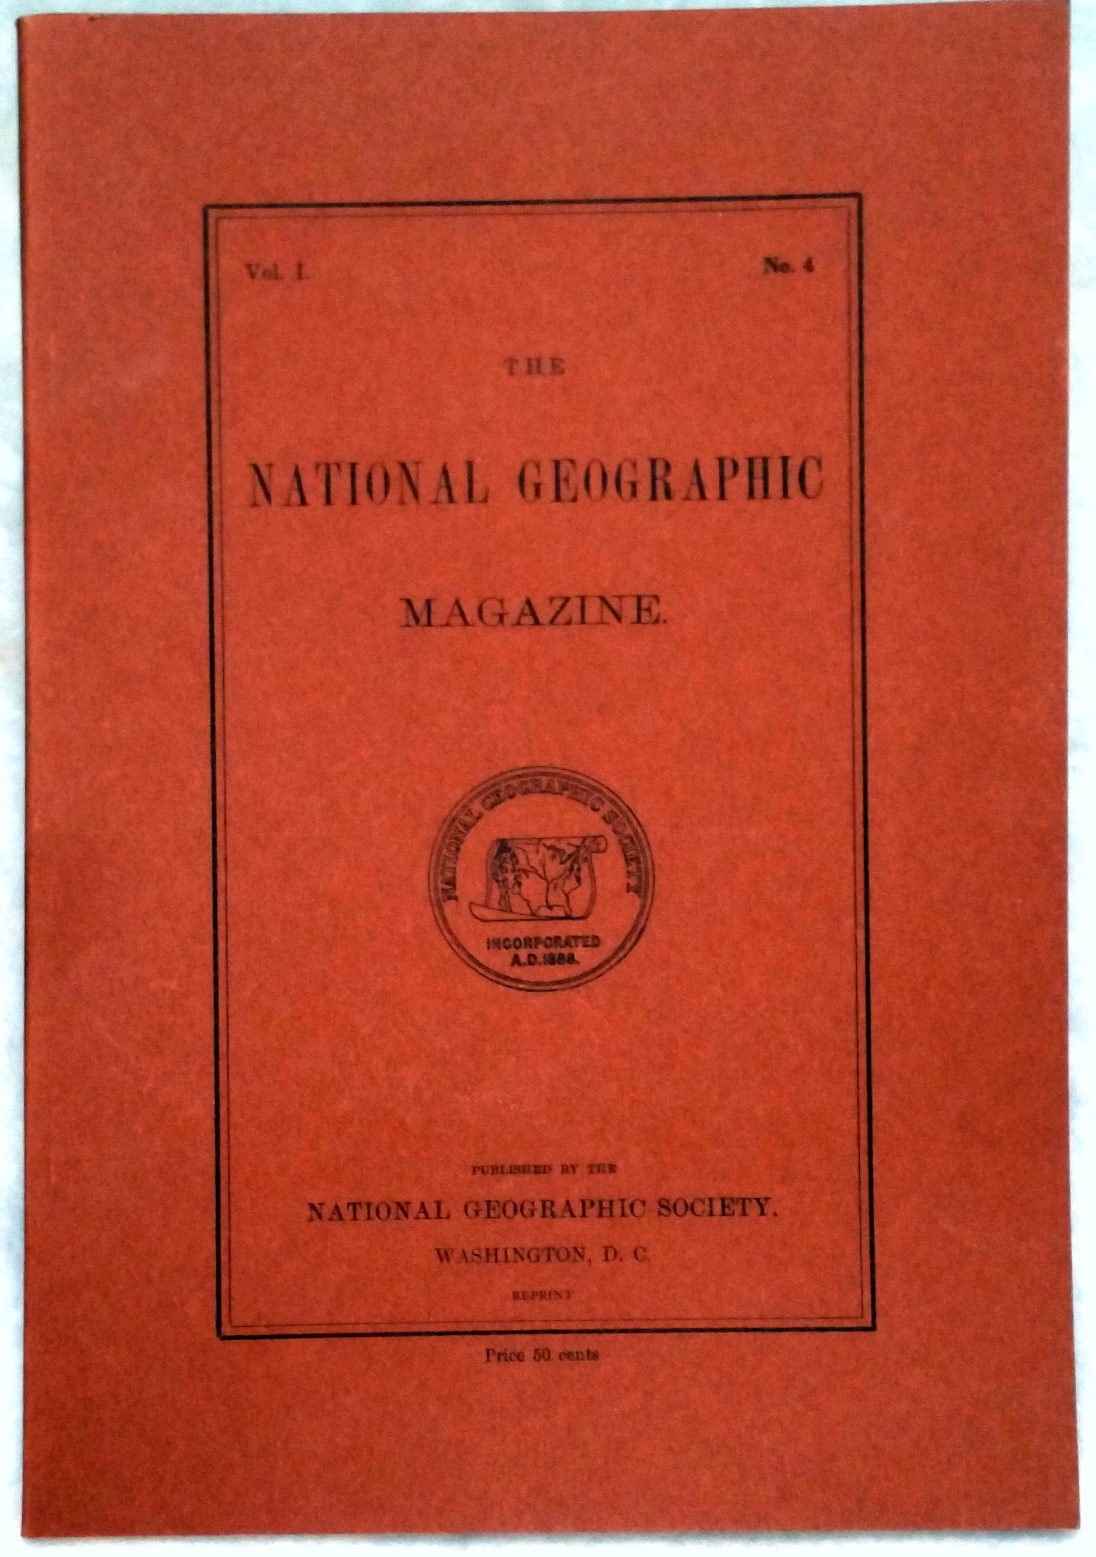 Image for The National Geographic Magazine, Vol I. No. 4